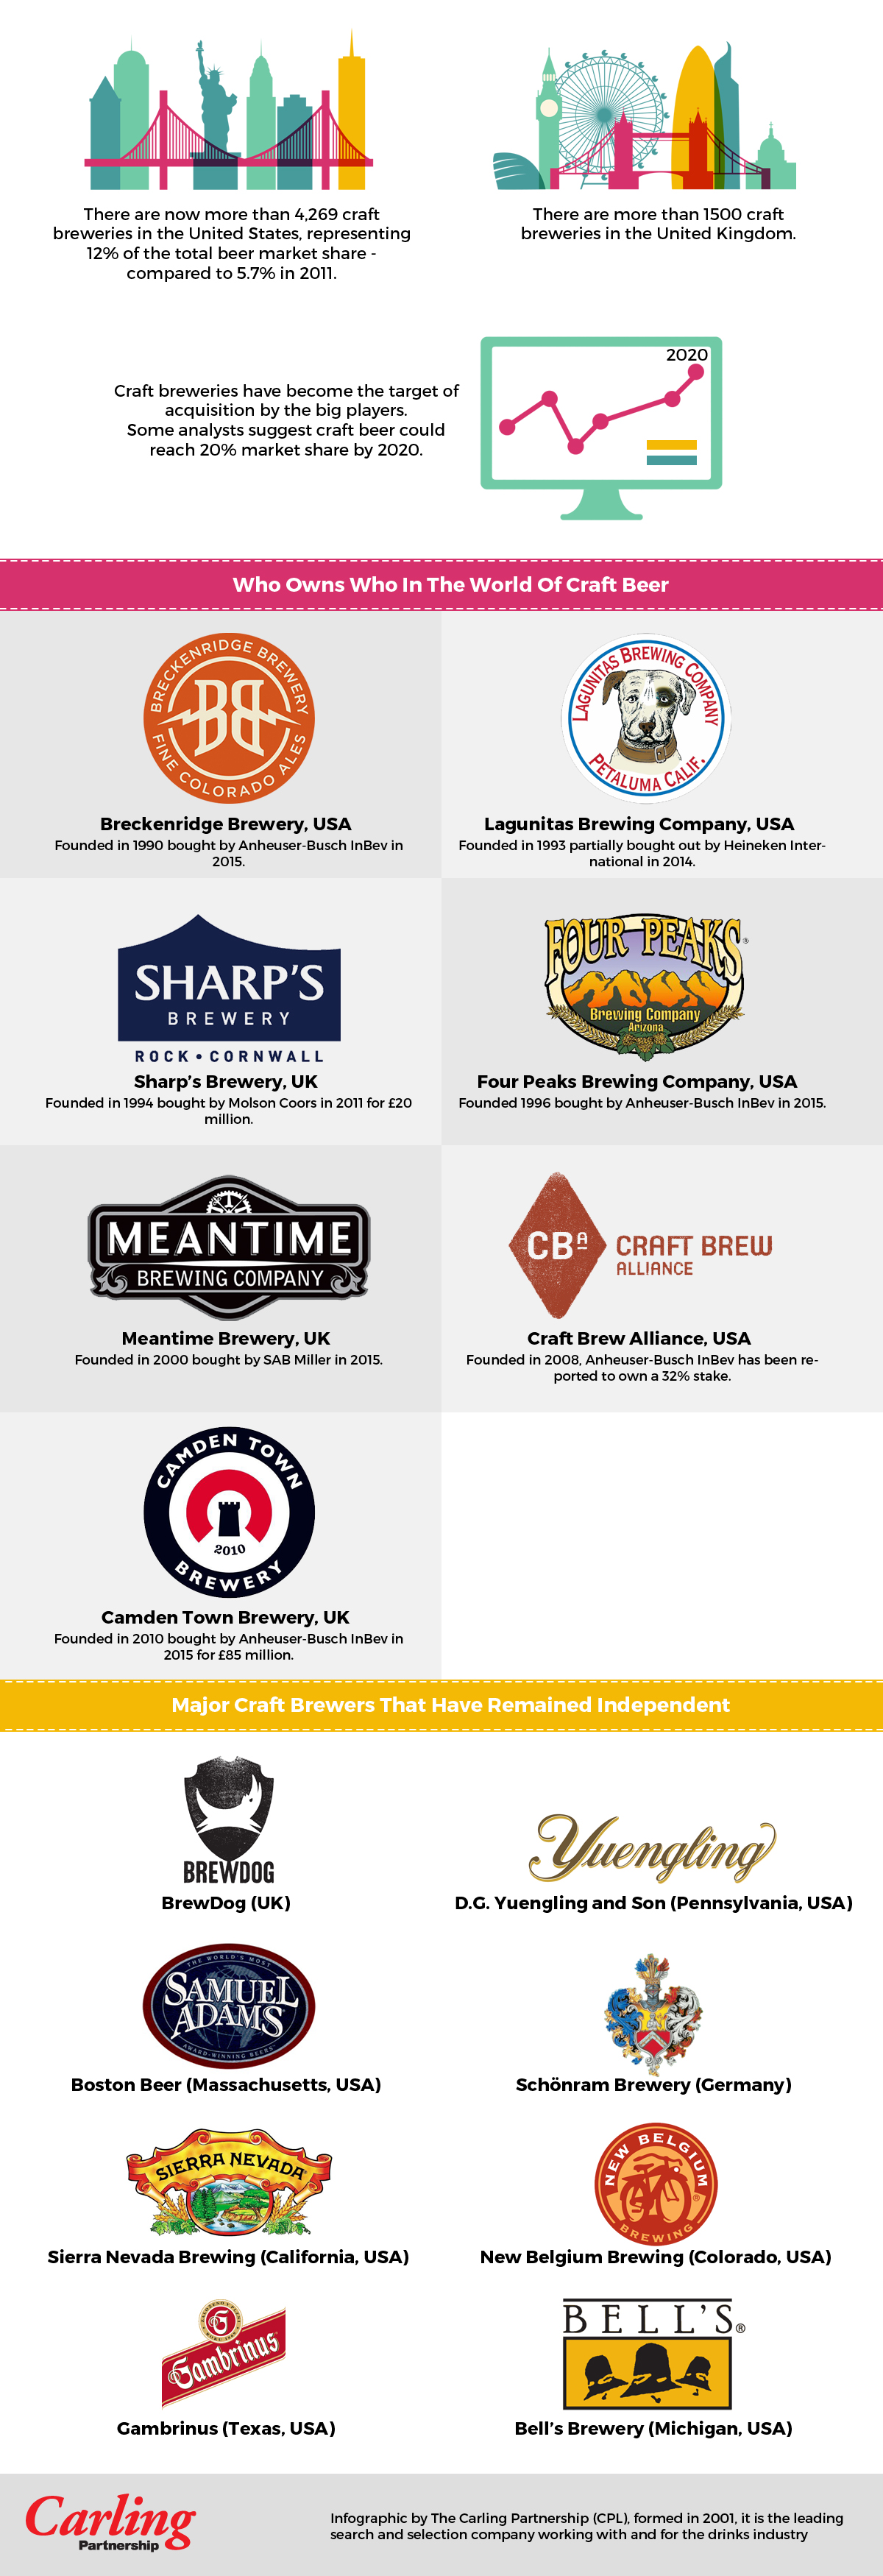 Who-Owns-Who-In-The-World-Of-Craft-Beer-Infographic